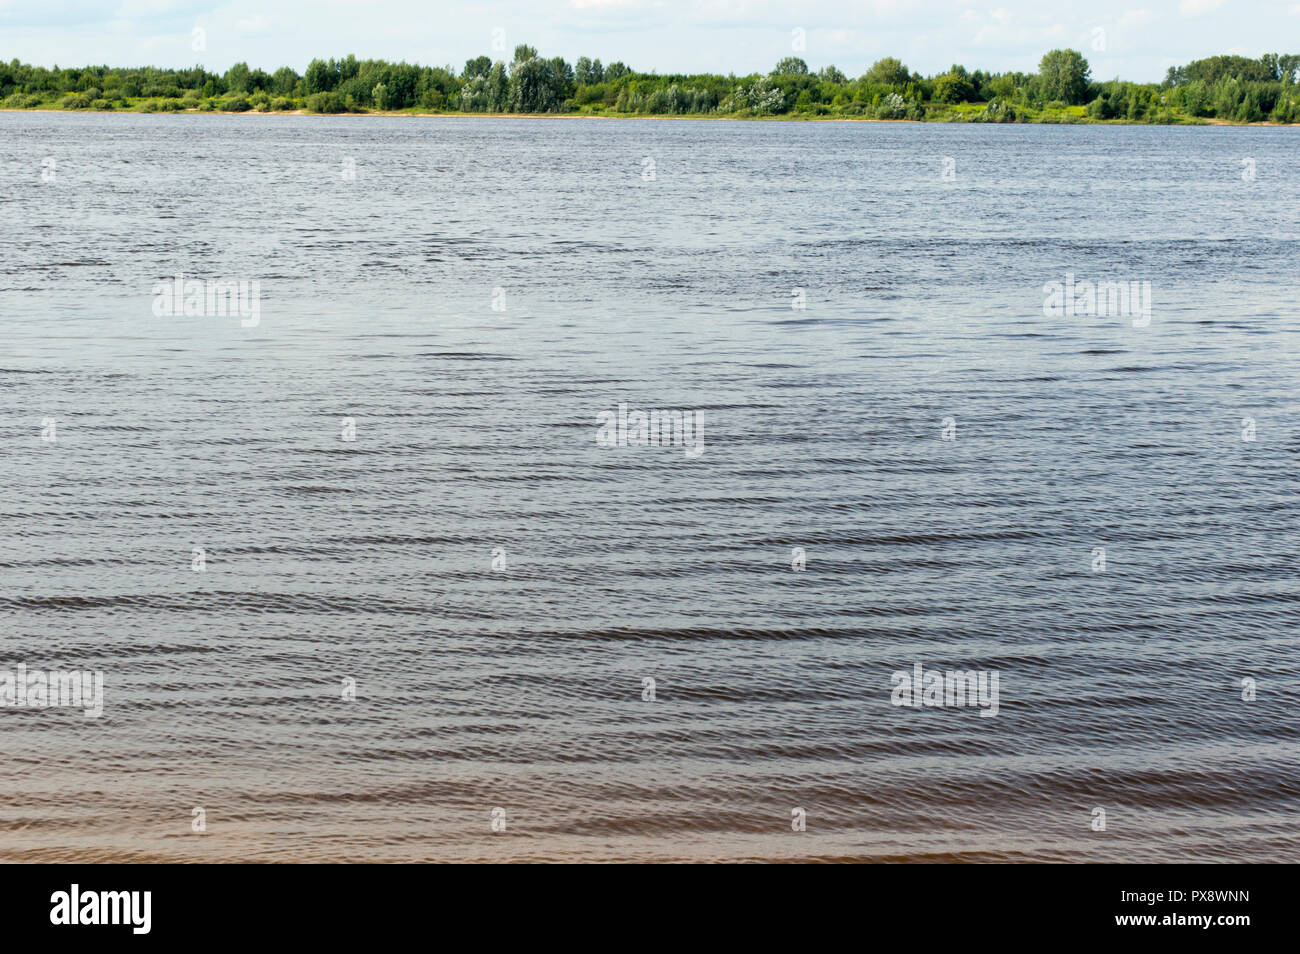 The creek flows into the Volga. Current water and rocks on the bottom. - Stock Image